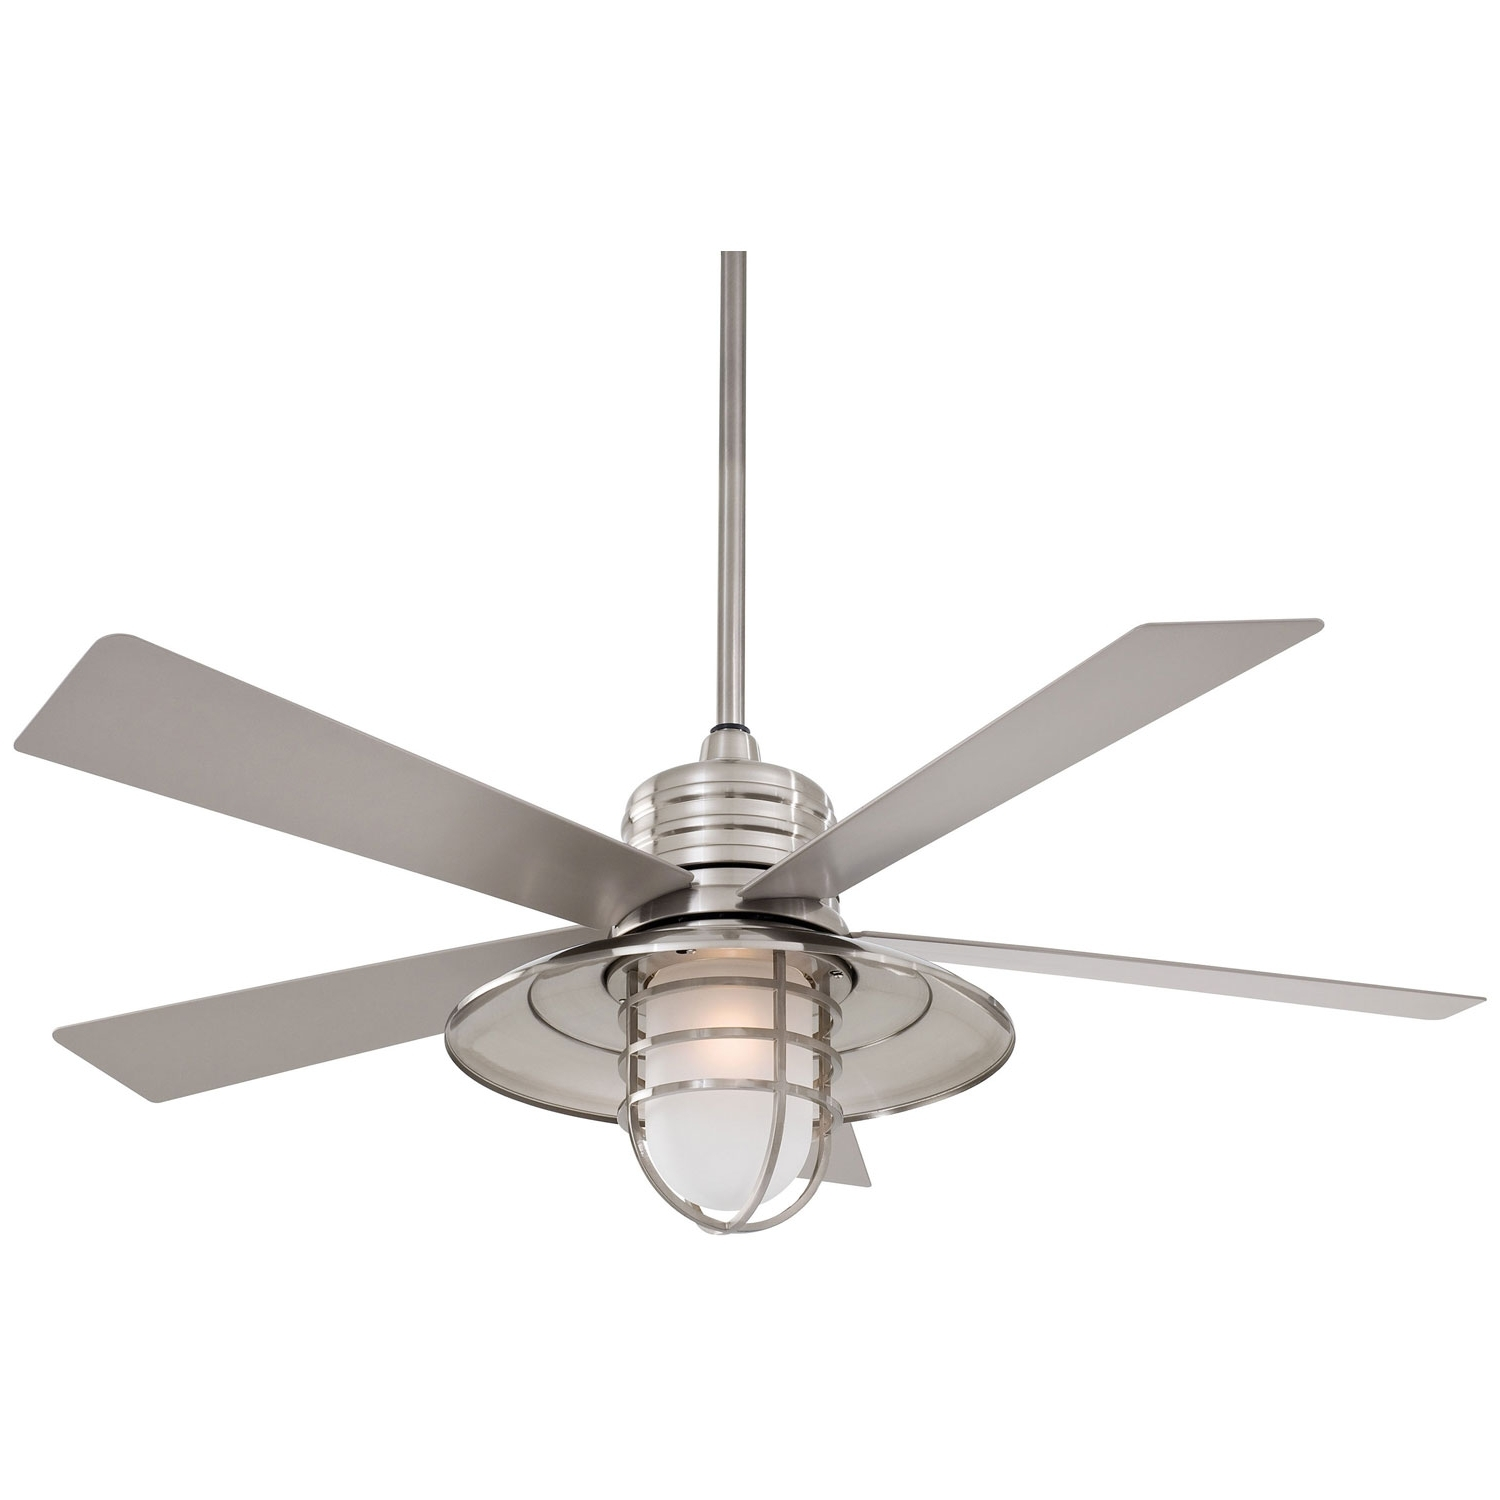 Brushed Nickel Outdoor Ceiling Fans Regarding Famous Minka Aire Rainman Brushed Nickel 54 Inch Blade Indoor/outdoor (View 5 of 20)